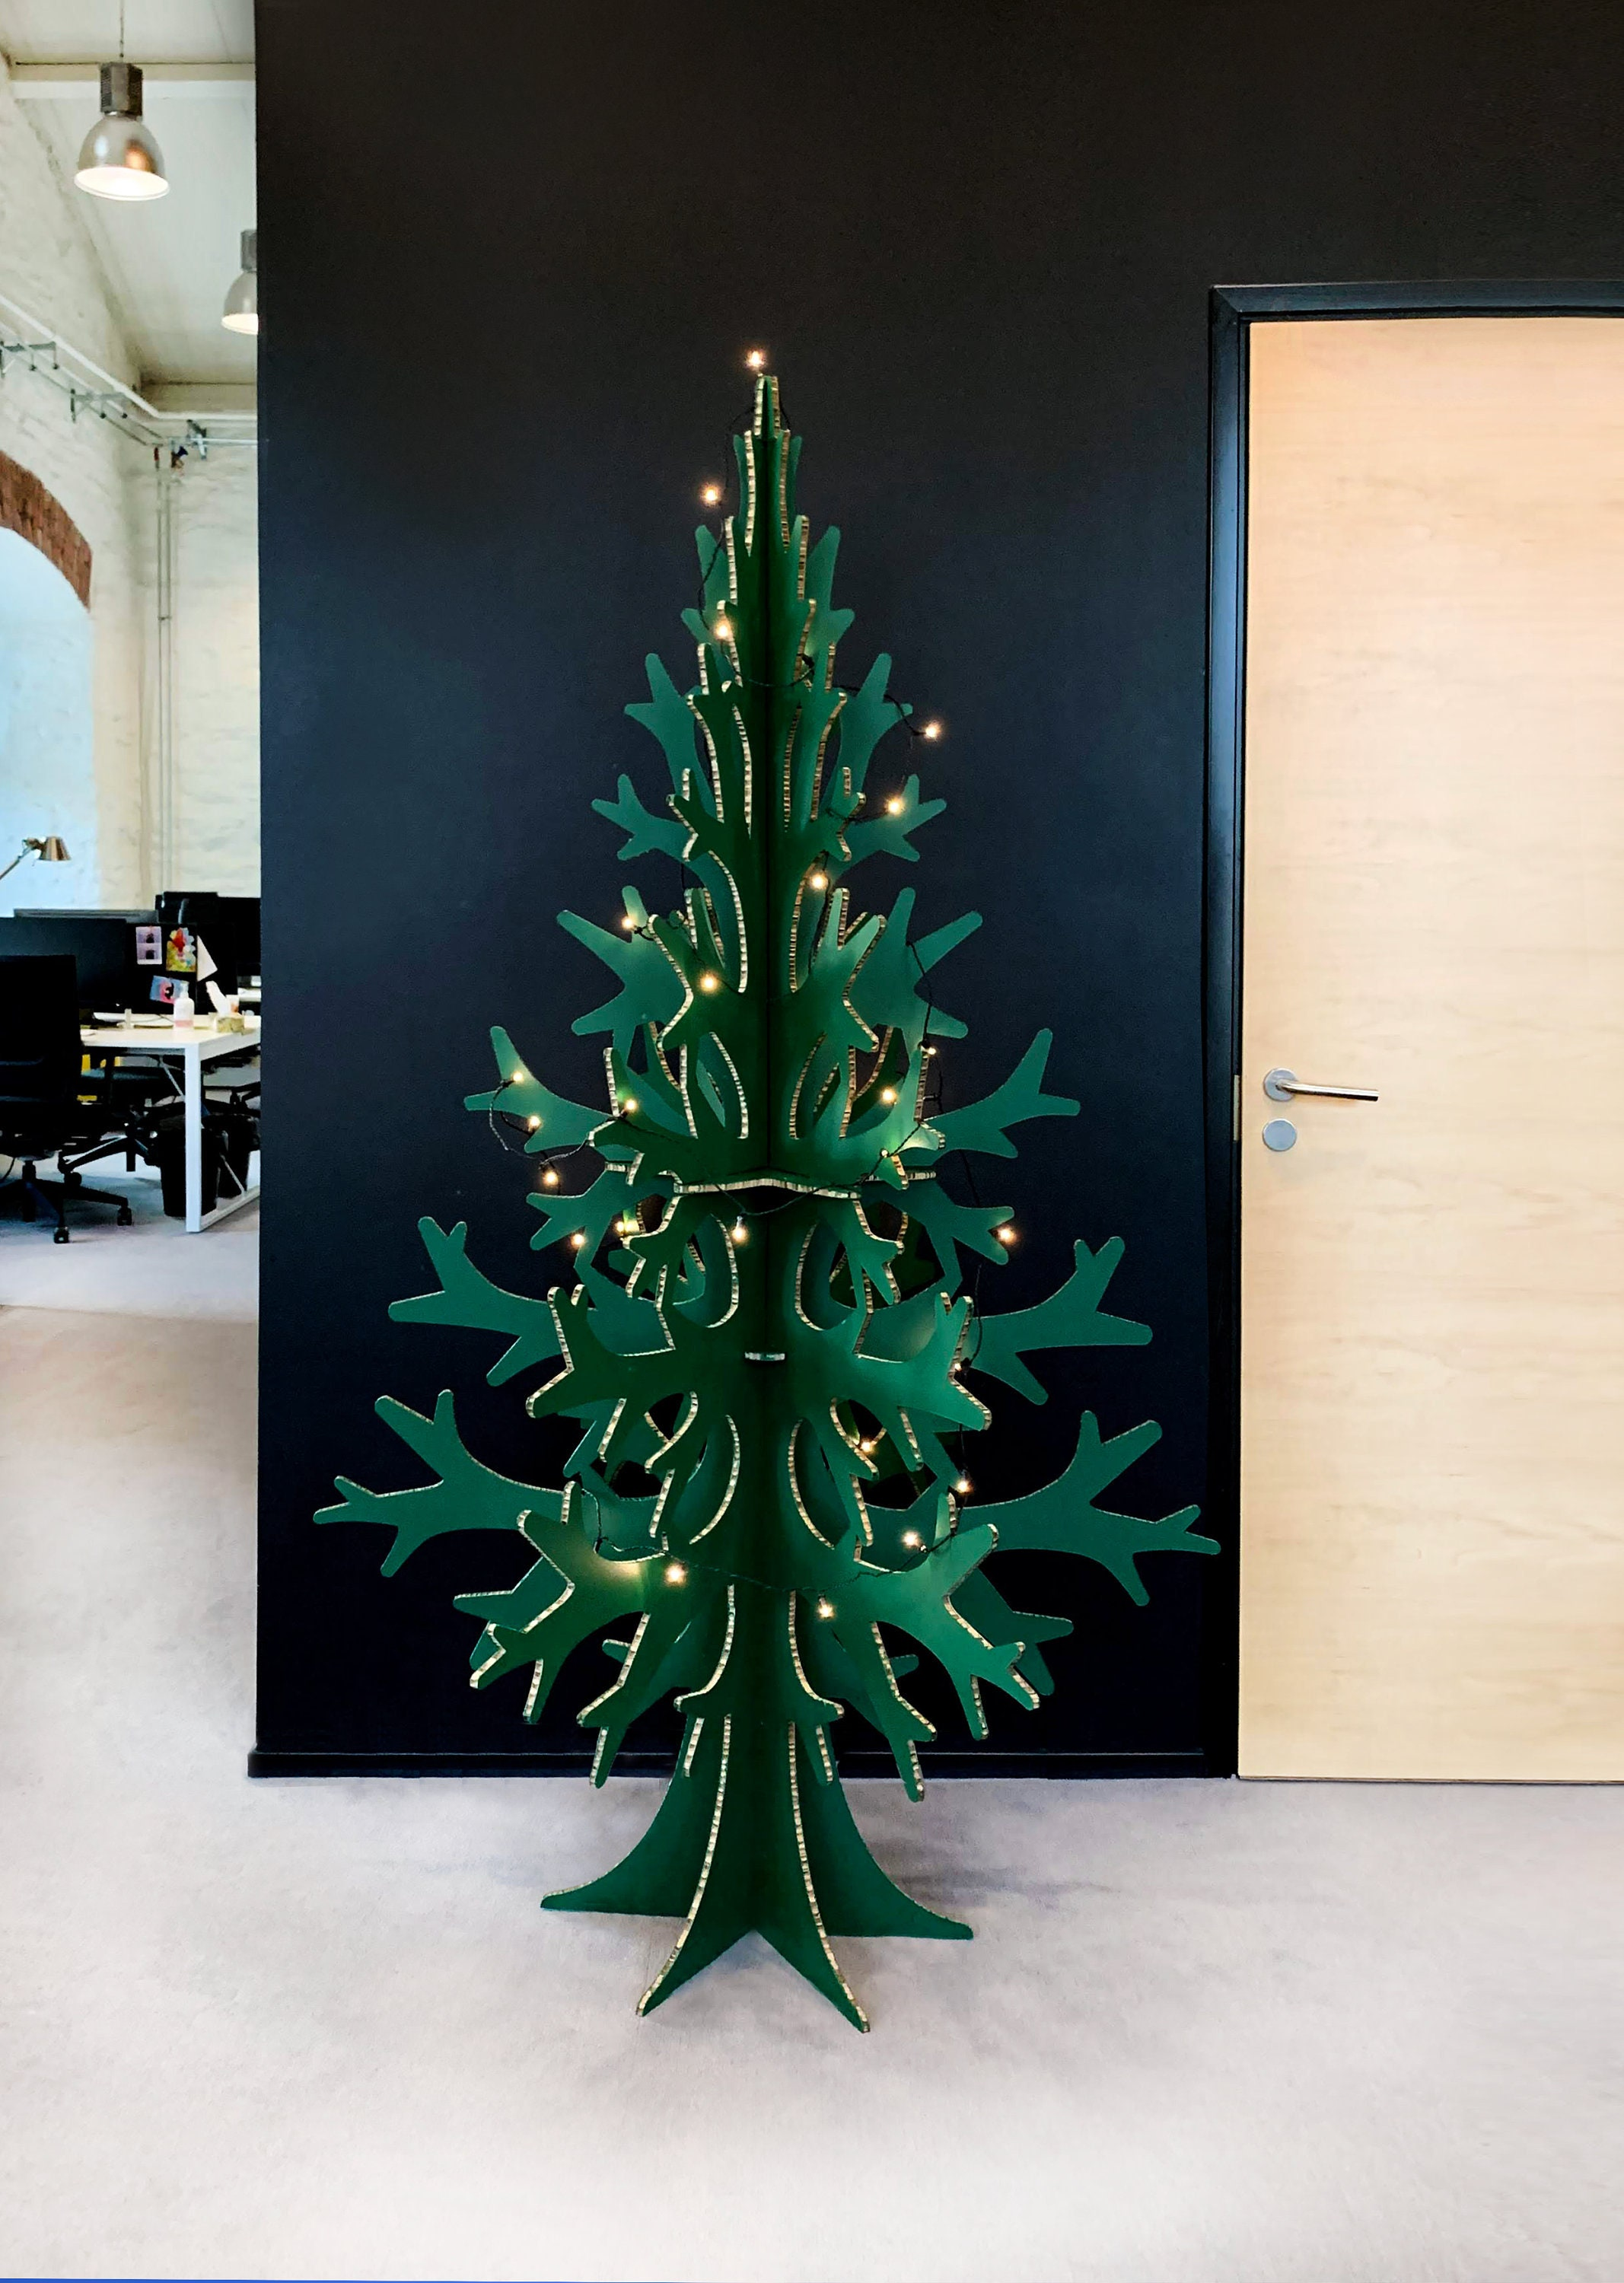 Cardboard Christmas Tree.2m 6 56 Ft Green Cardboard Christmas Tree Modern Holiday